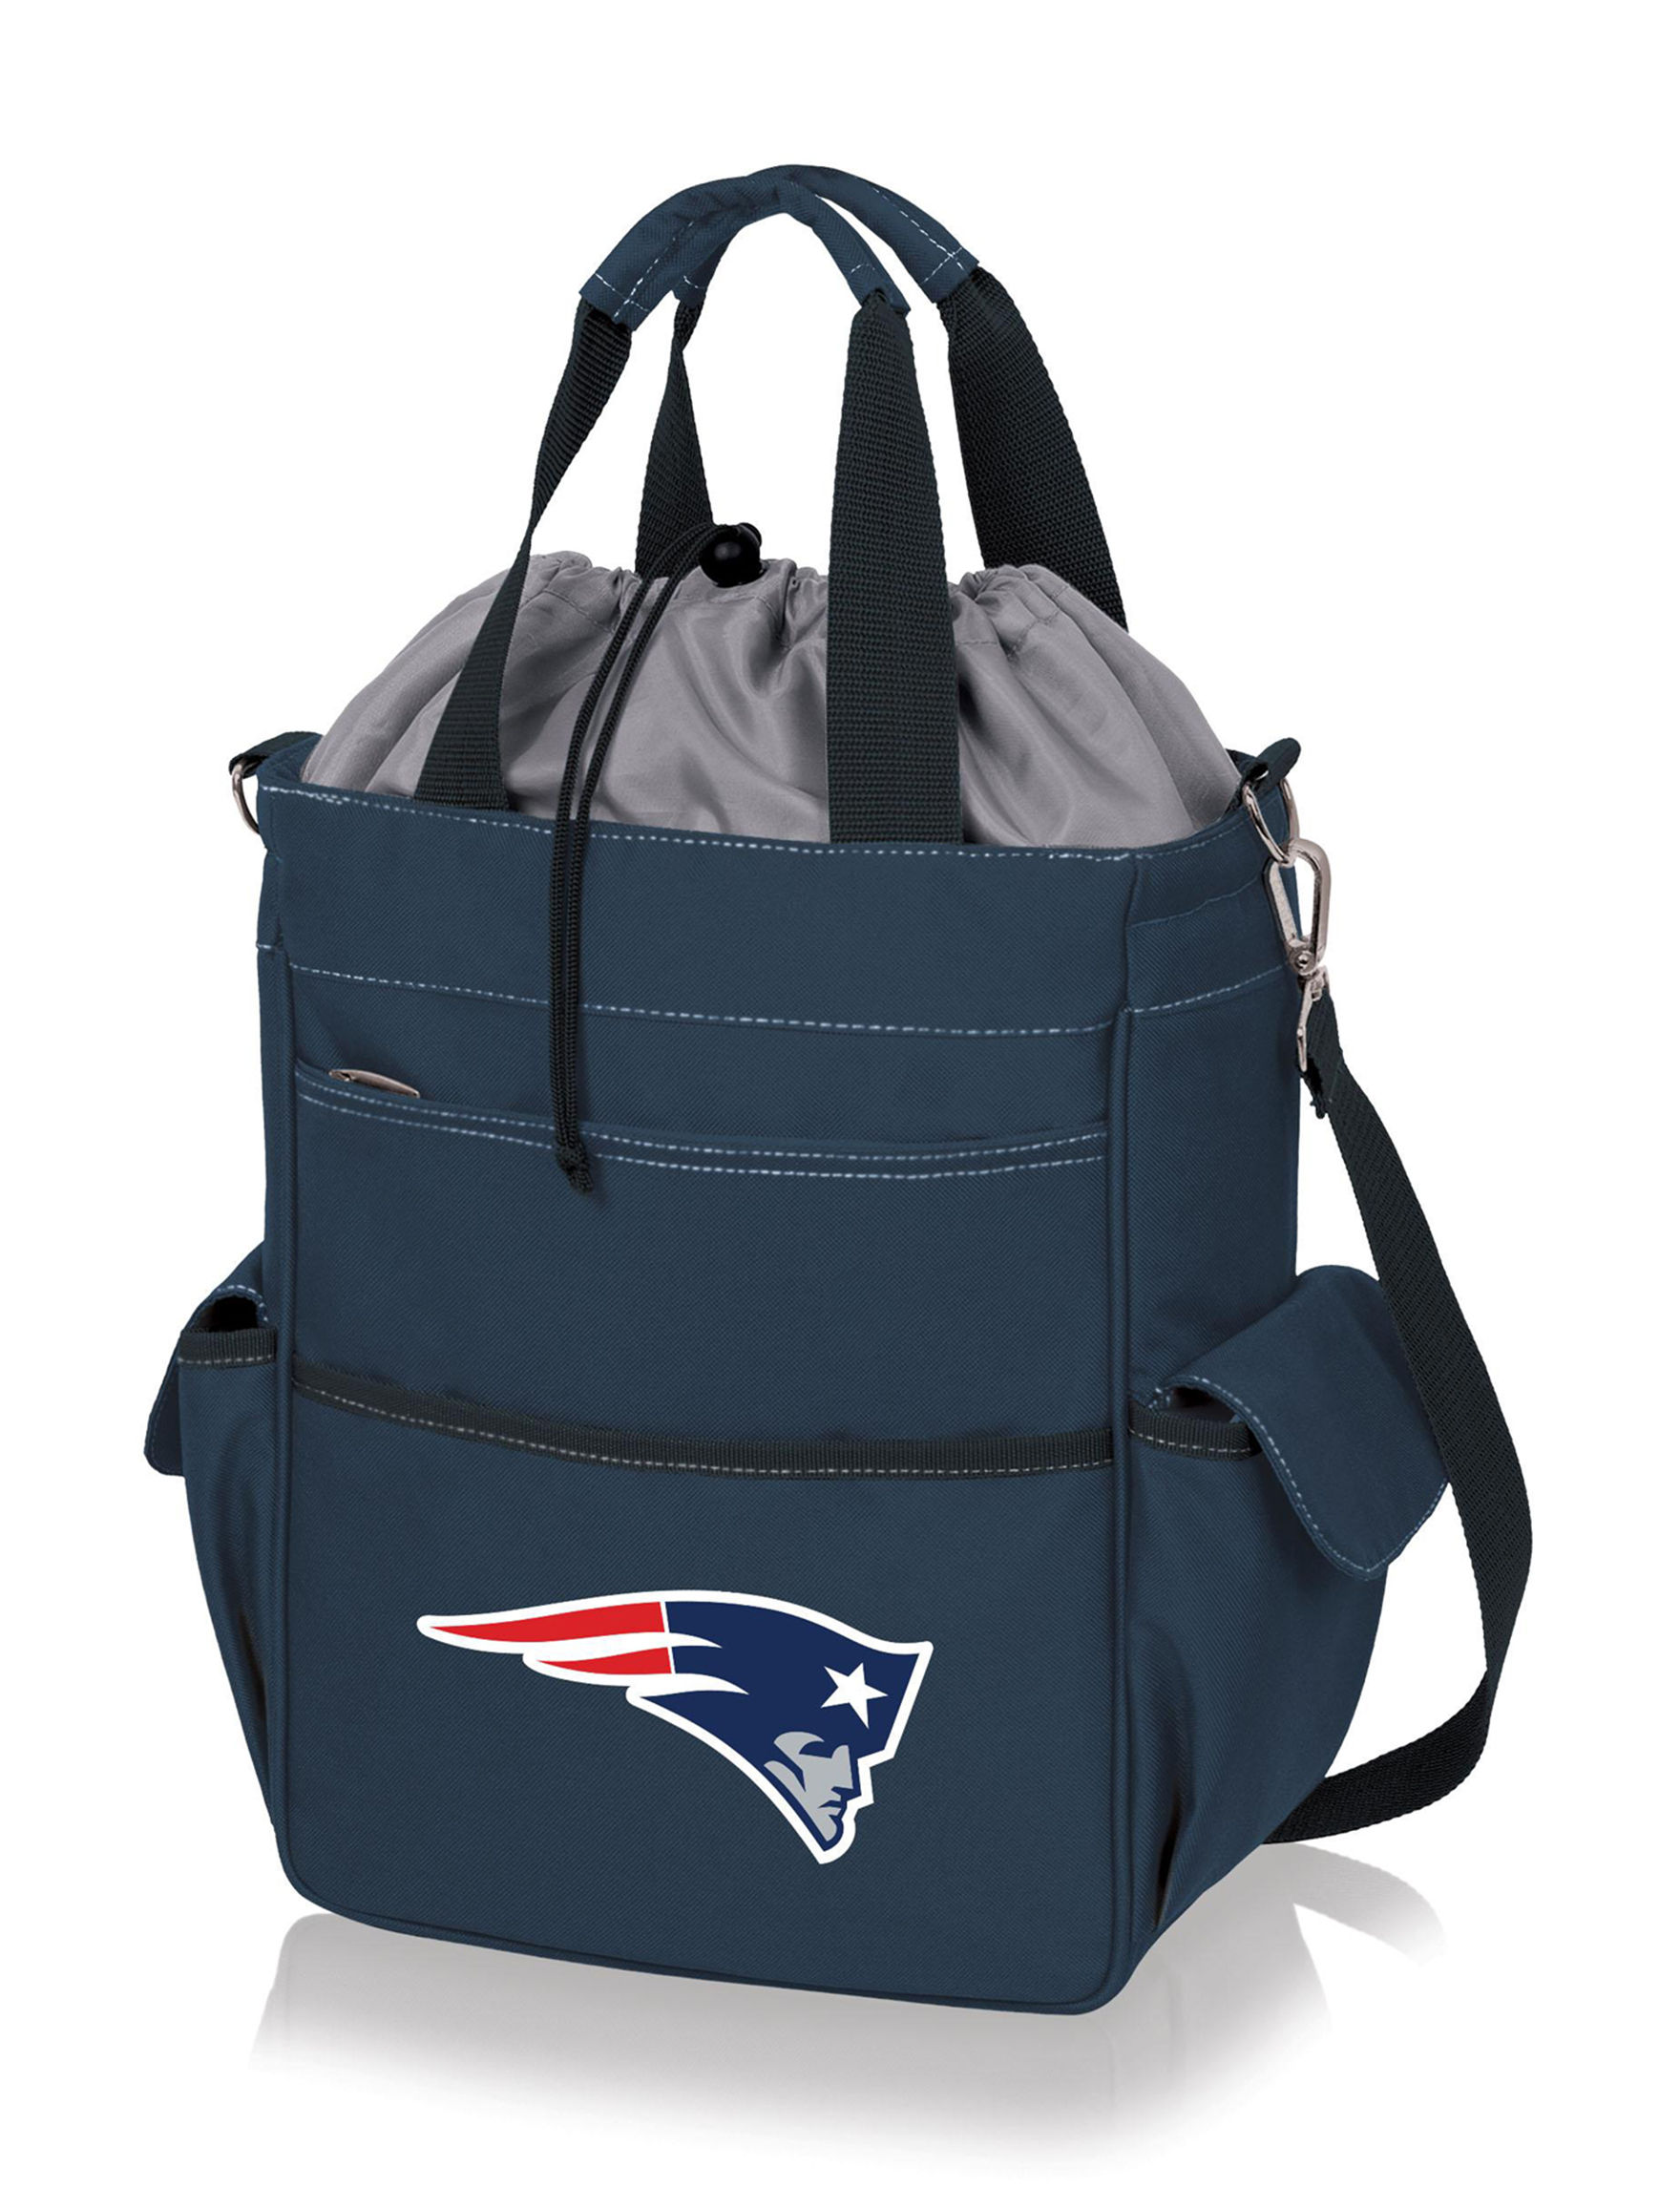 Picnic Time Navy Carriers & Totes Camping & Outdoor Gear